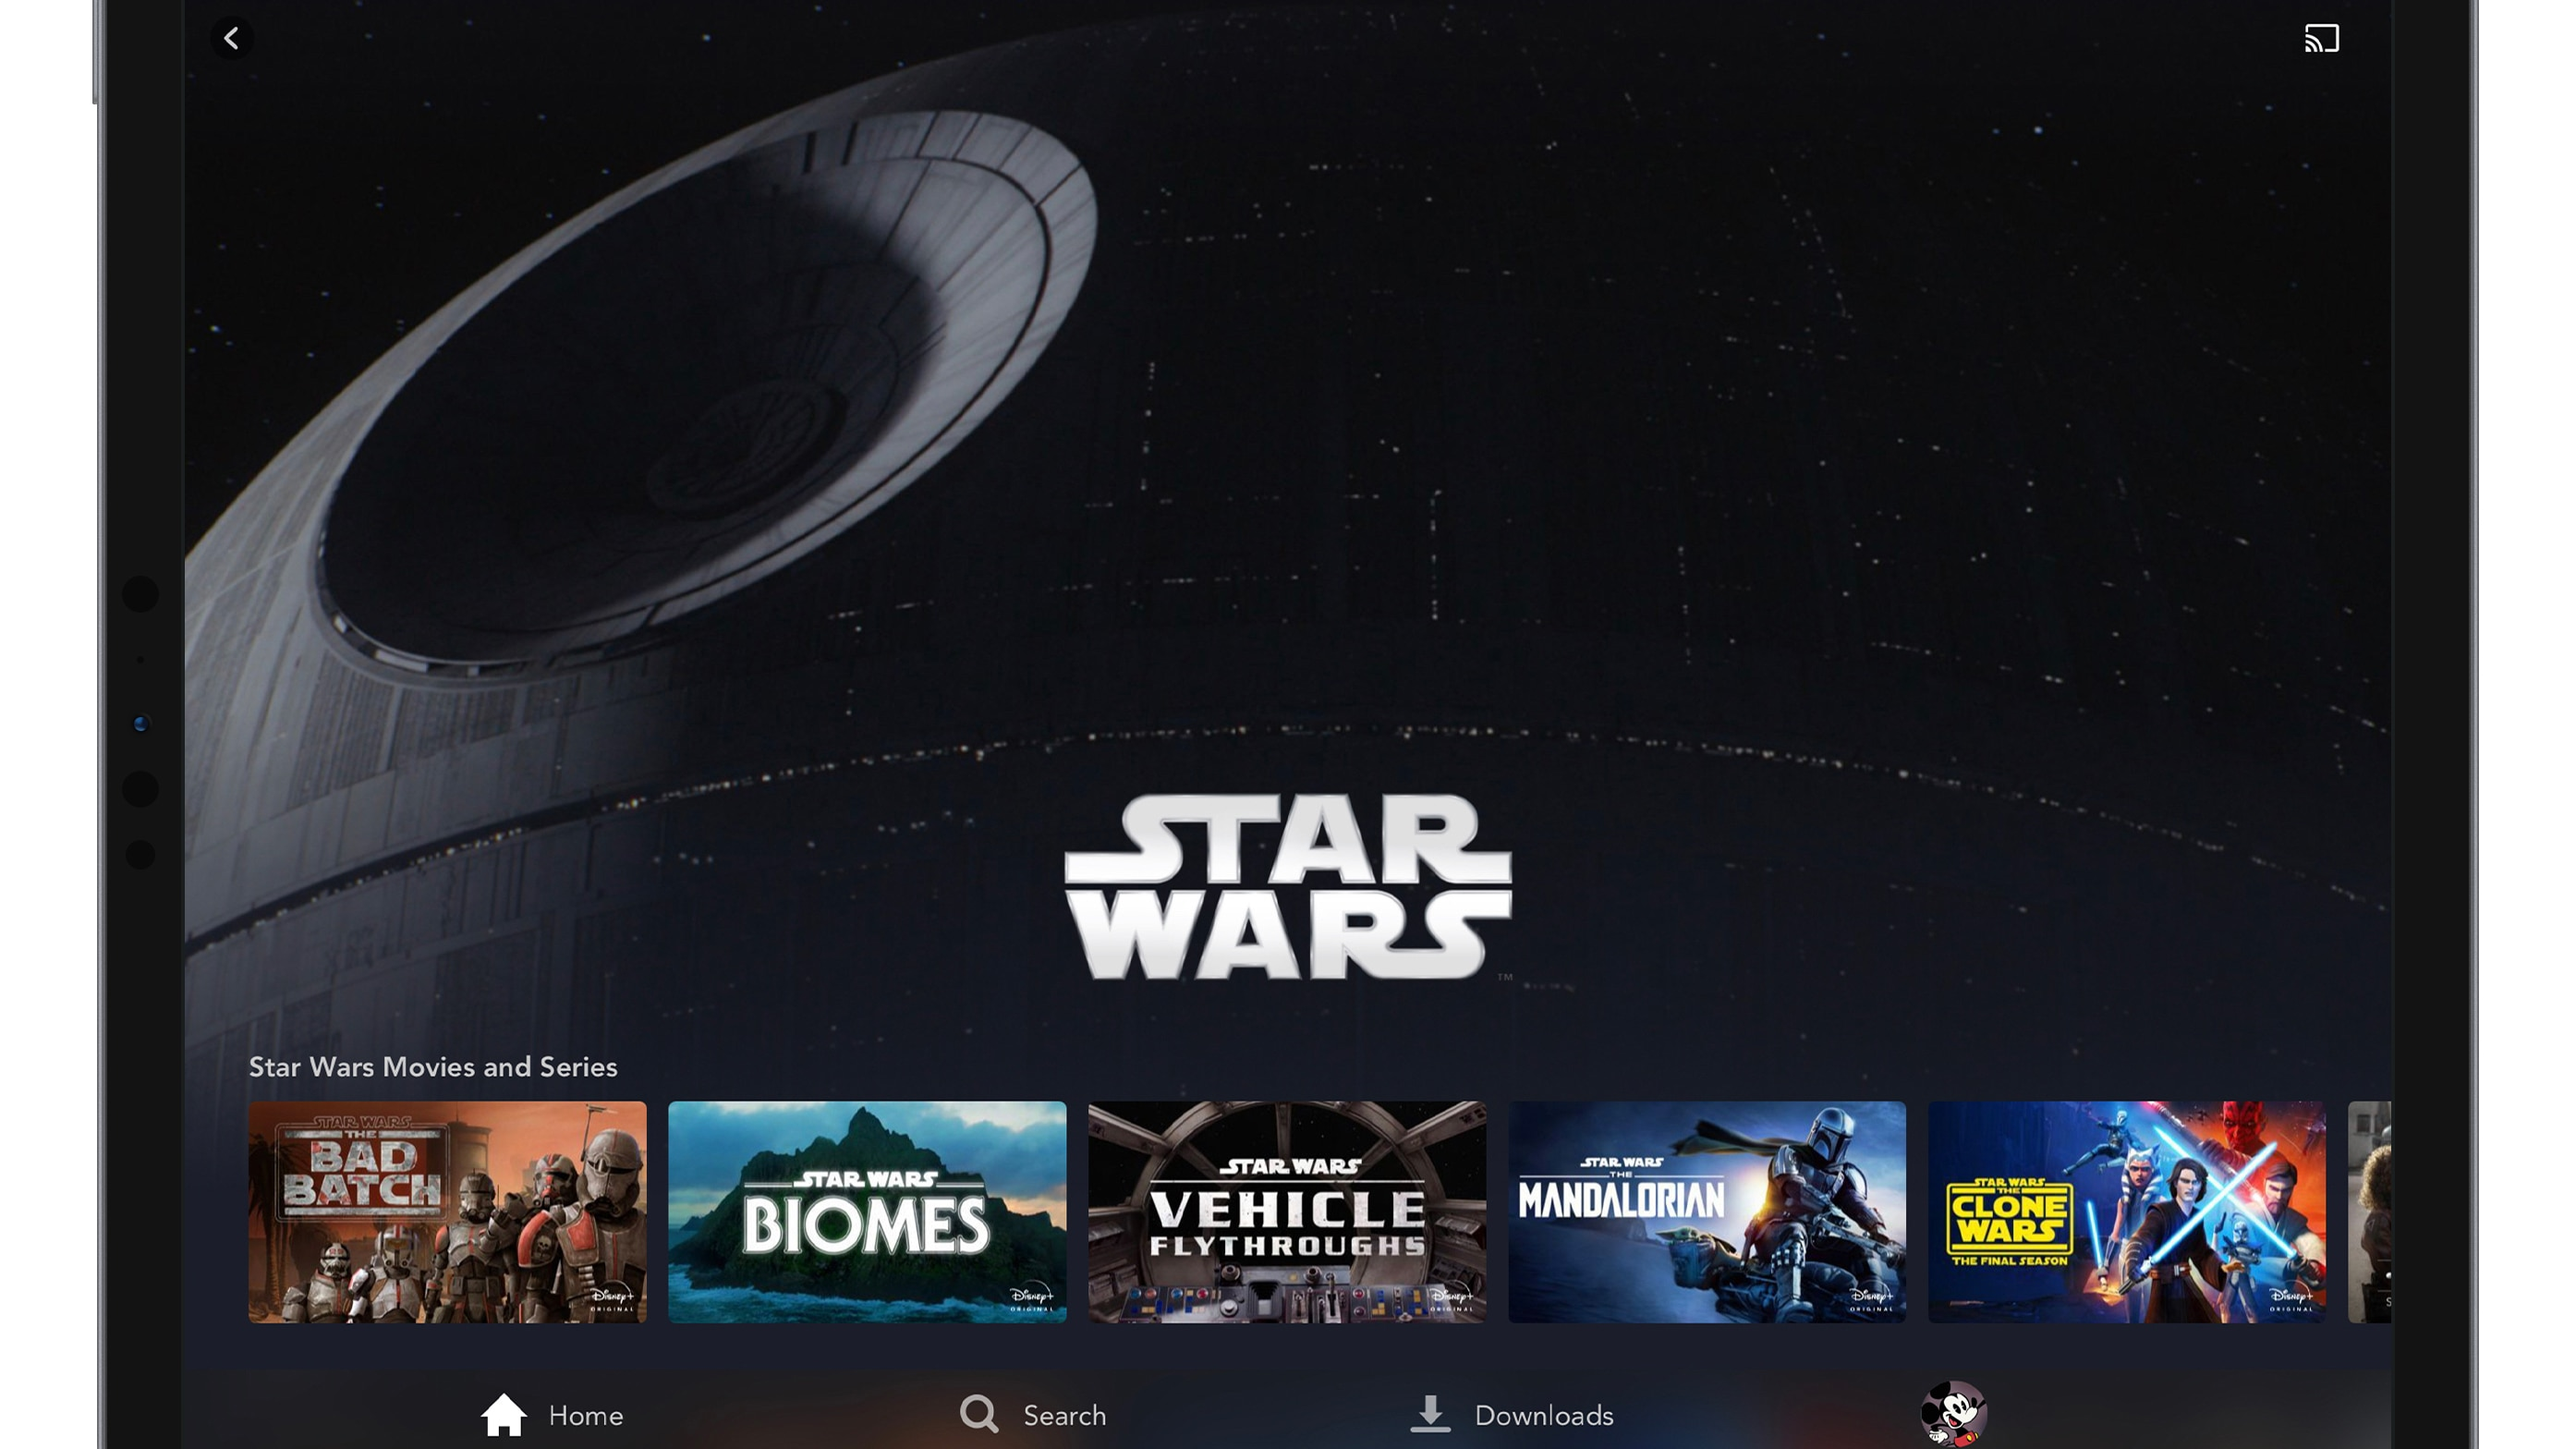 Disney+ Brand Landing Page on Tablet Device